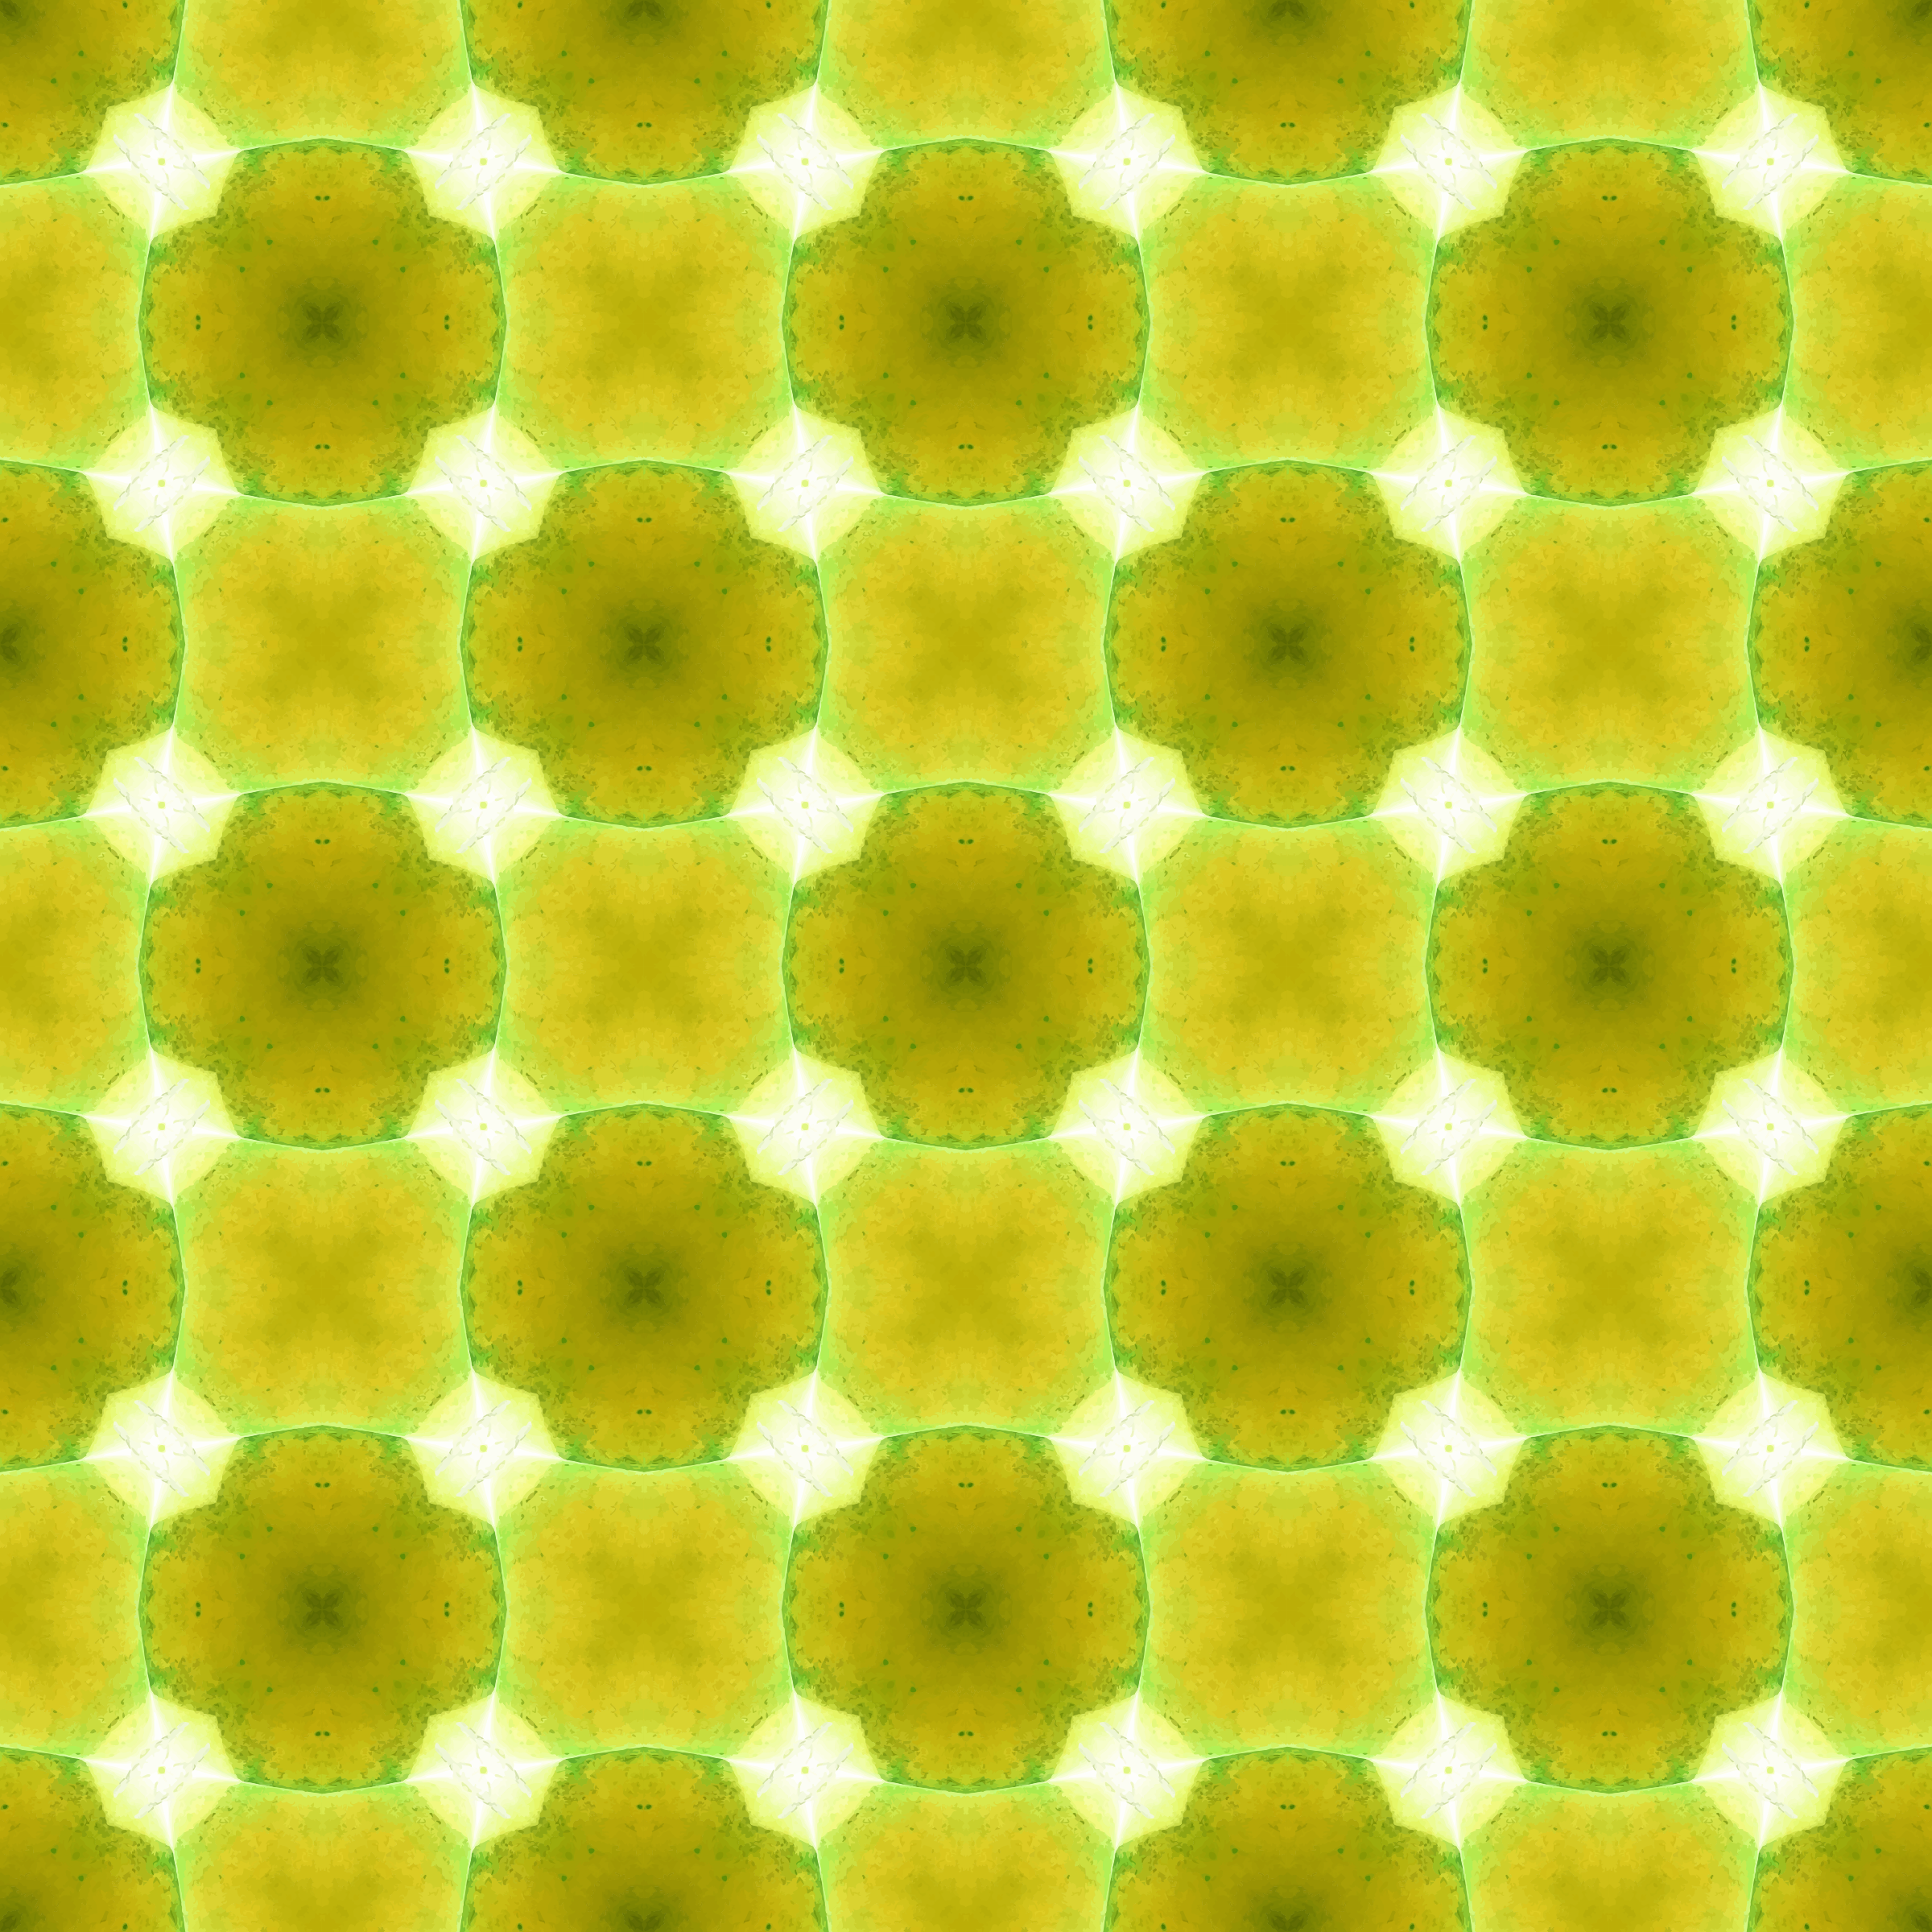 Background pattern 165 (colour 4) by Firkin